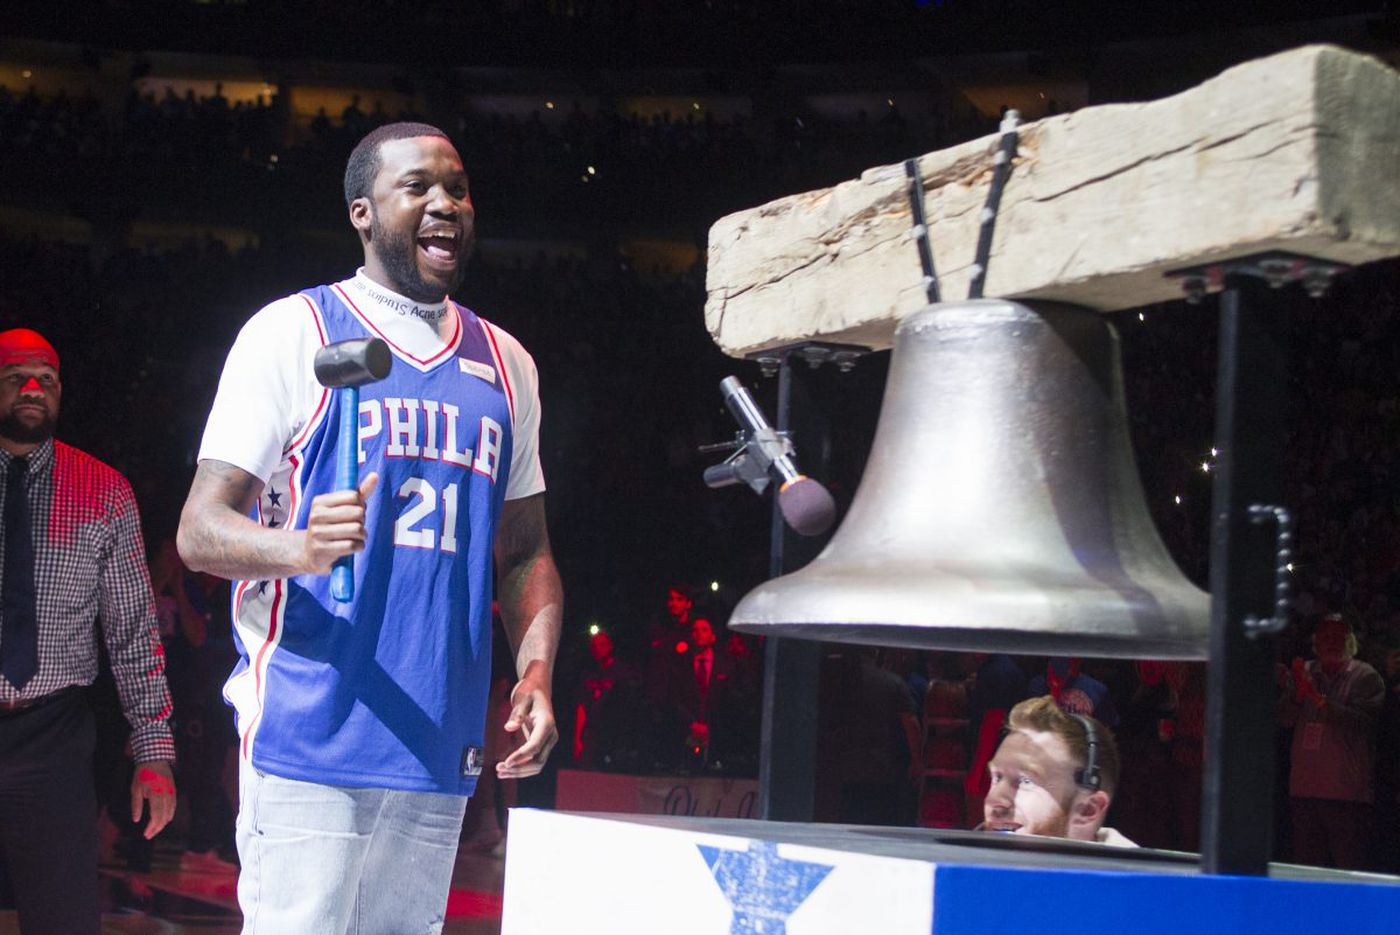 Meek Mill to NBC's Lester Holt: 'No, I don't feel free'